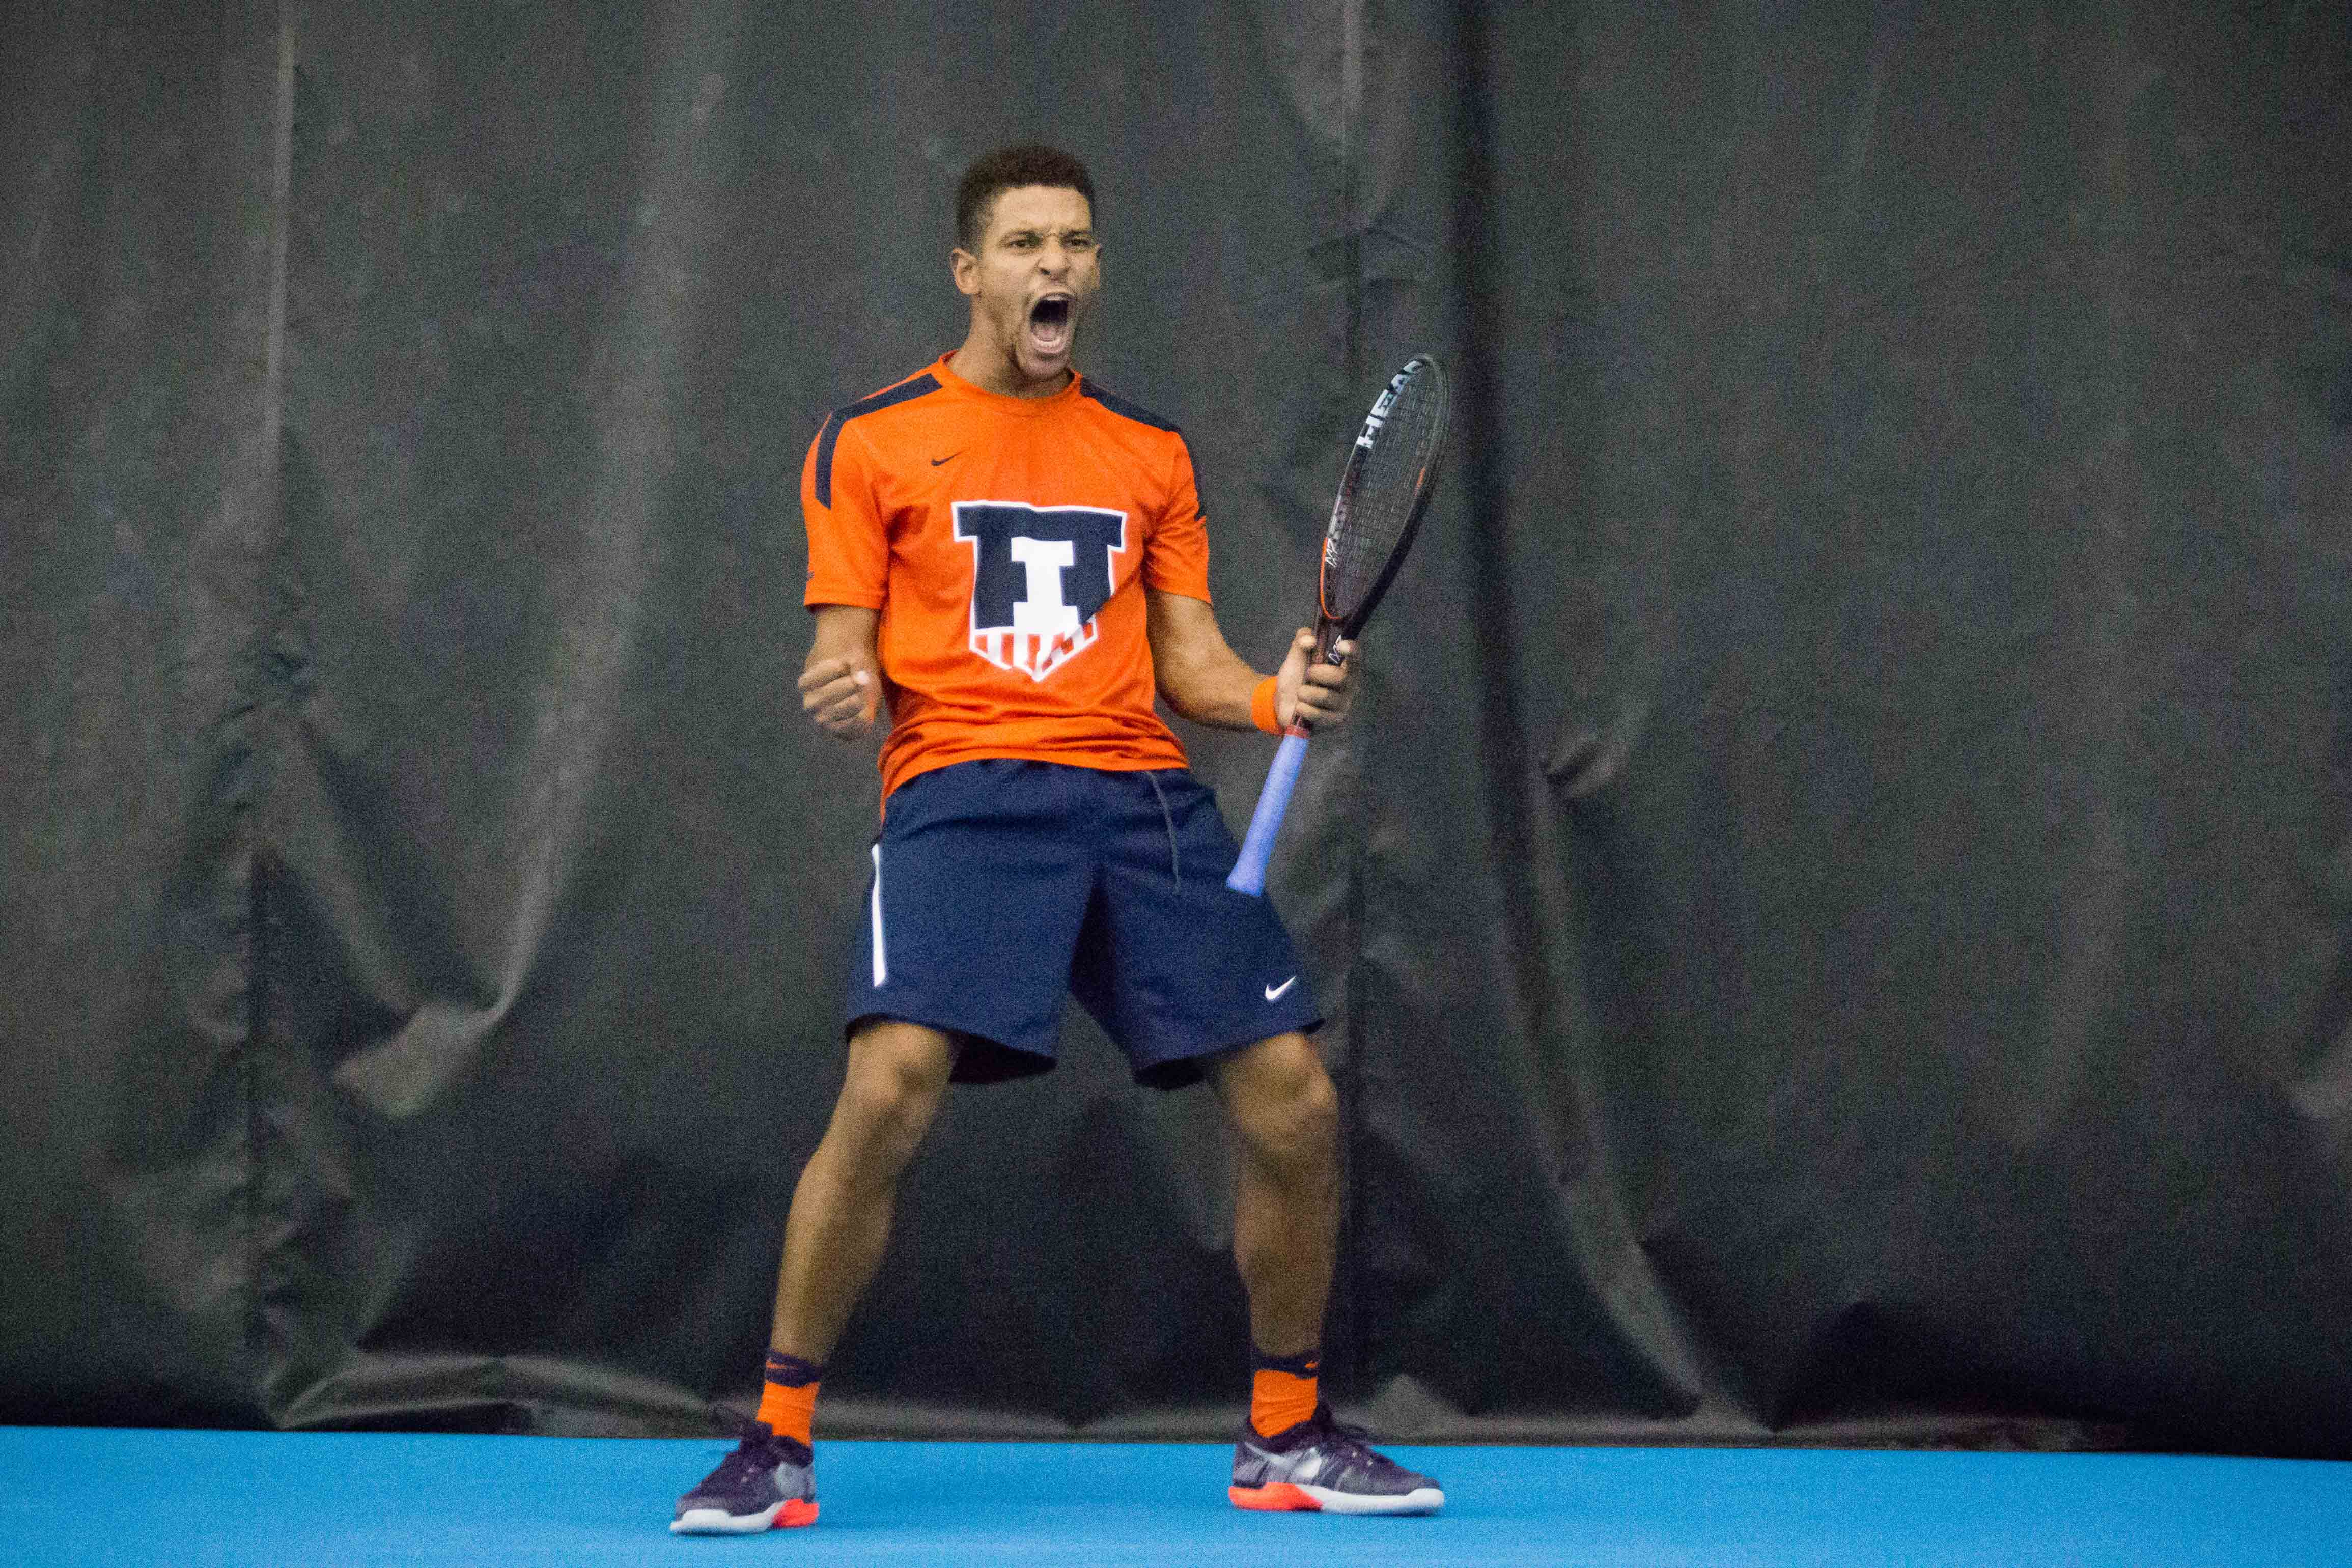 Illinois' Julian Childers celebrates after winning a game in his match against Indiana's Matthew McCoy at Atkins Tennis Center on Friday, February 10. Childers defeated McCoy and the Illini won 5-2.